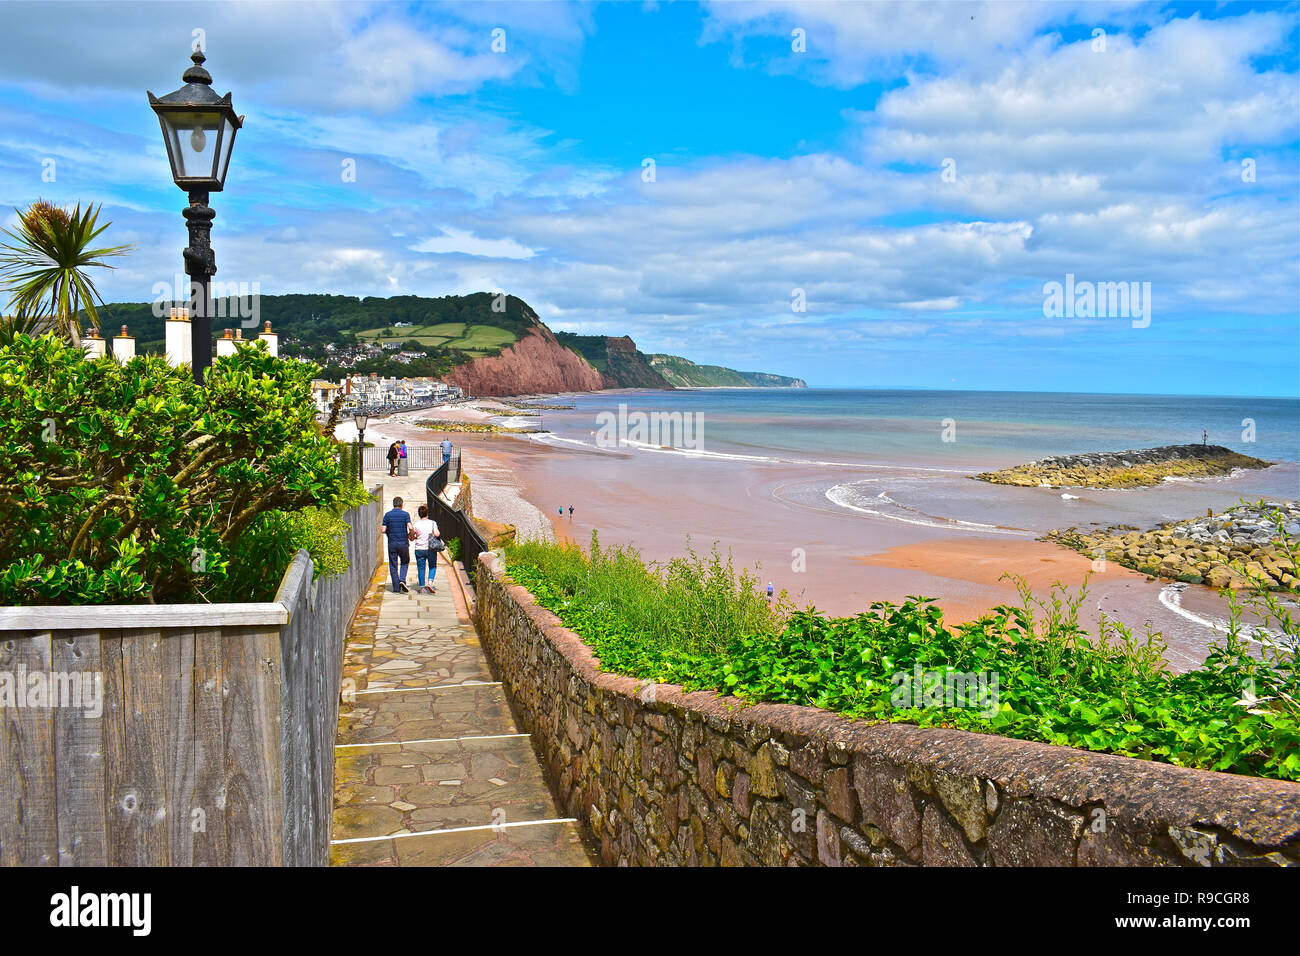 A couple walk down the coastal path leading to the picturesque seaside town of Sidmouth in Devon, with distant cliffs of the Jurassic Coast. - Stock Image